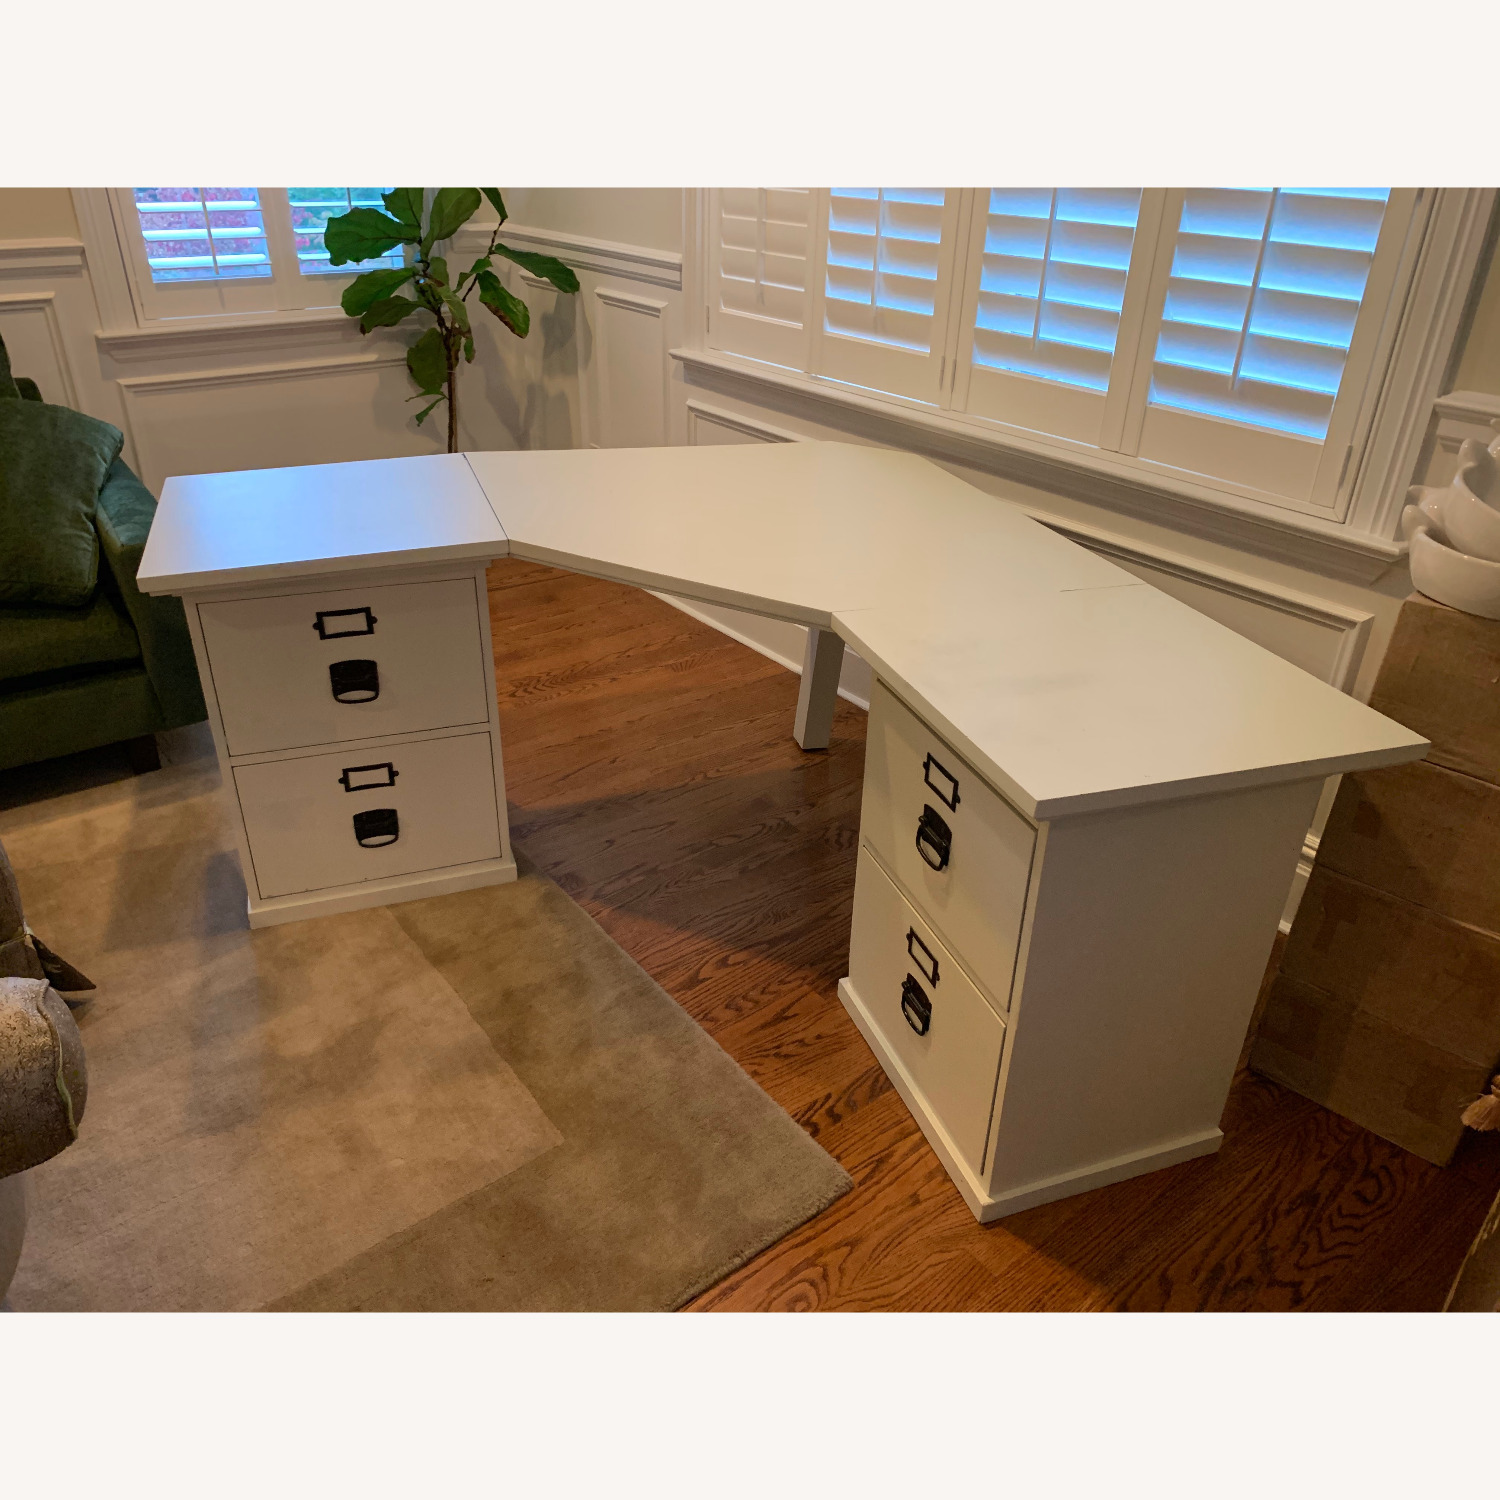 Pottery Barn Home Office Desk with 2 Drawer Cabinets - image-1